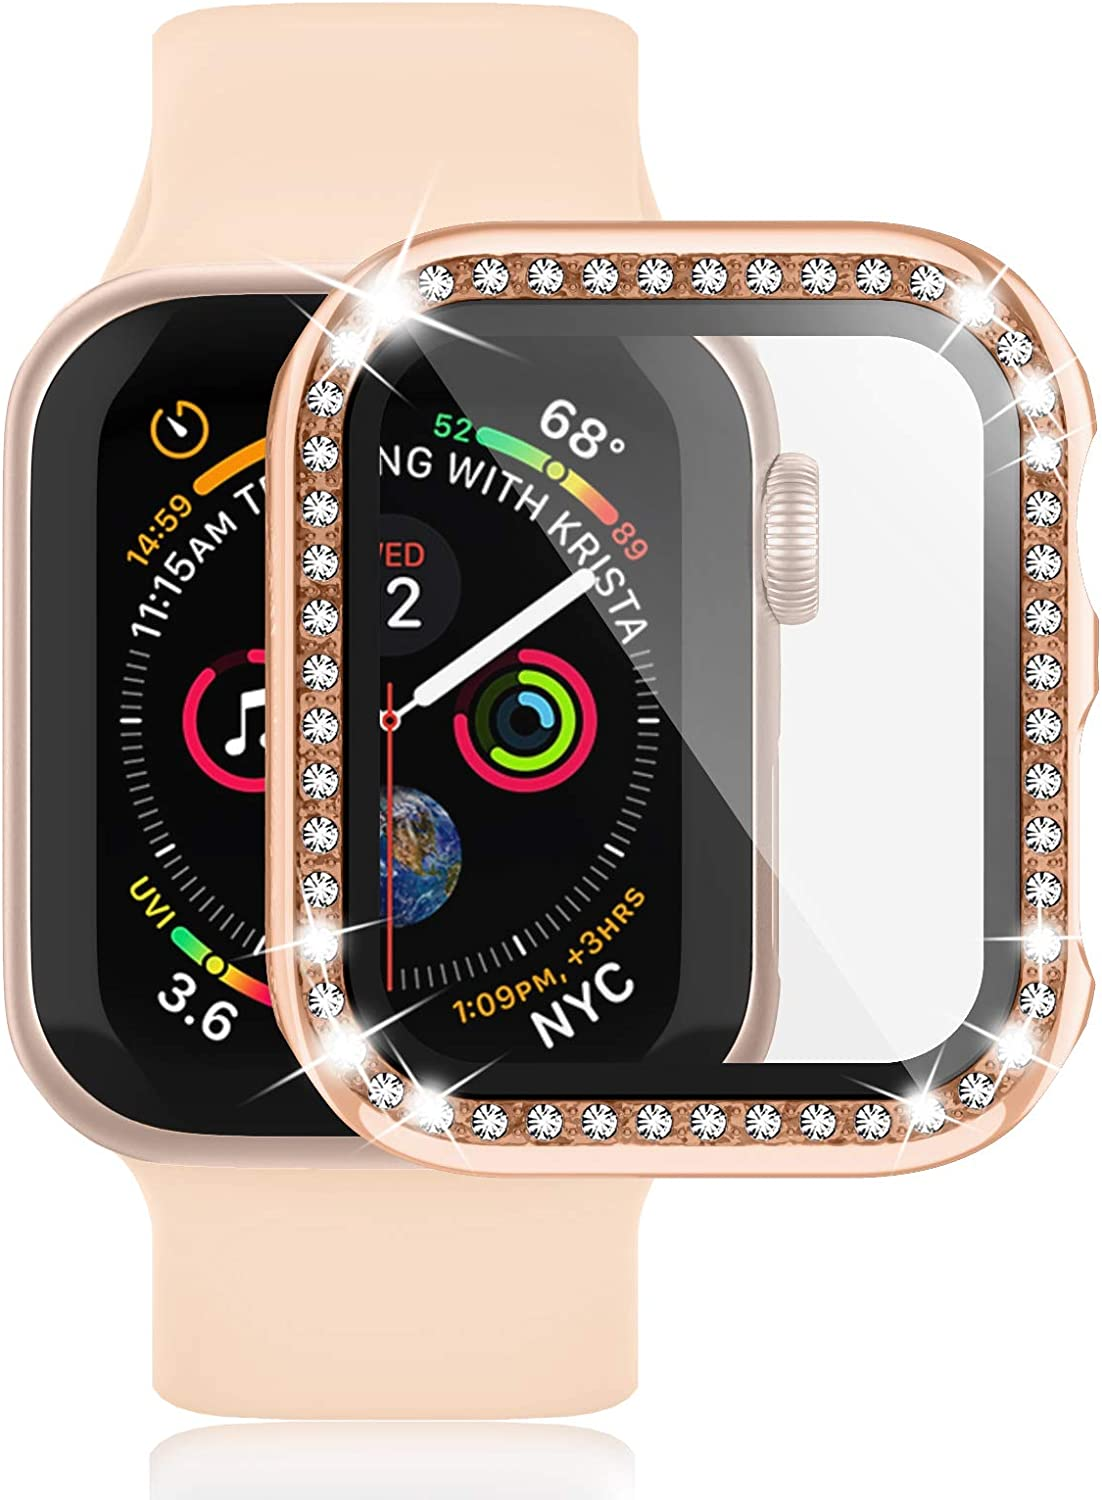 Waspo Apple Watch Case with Tempered Glass Screen Protector Compatible for Series SE/6/5/4 44mm, Anti-Scratch Bumper Hard PC Full Protective iwatch Cover Diamond Rhinestone Bling Frame for Women Girls